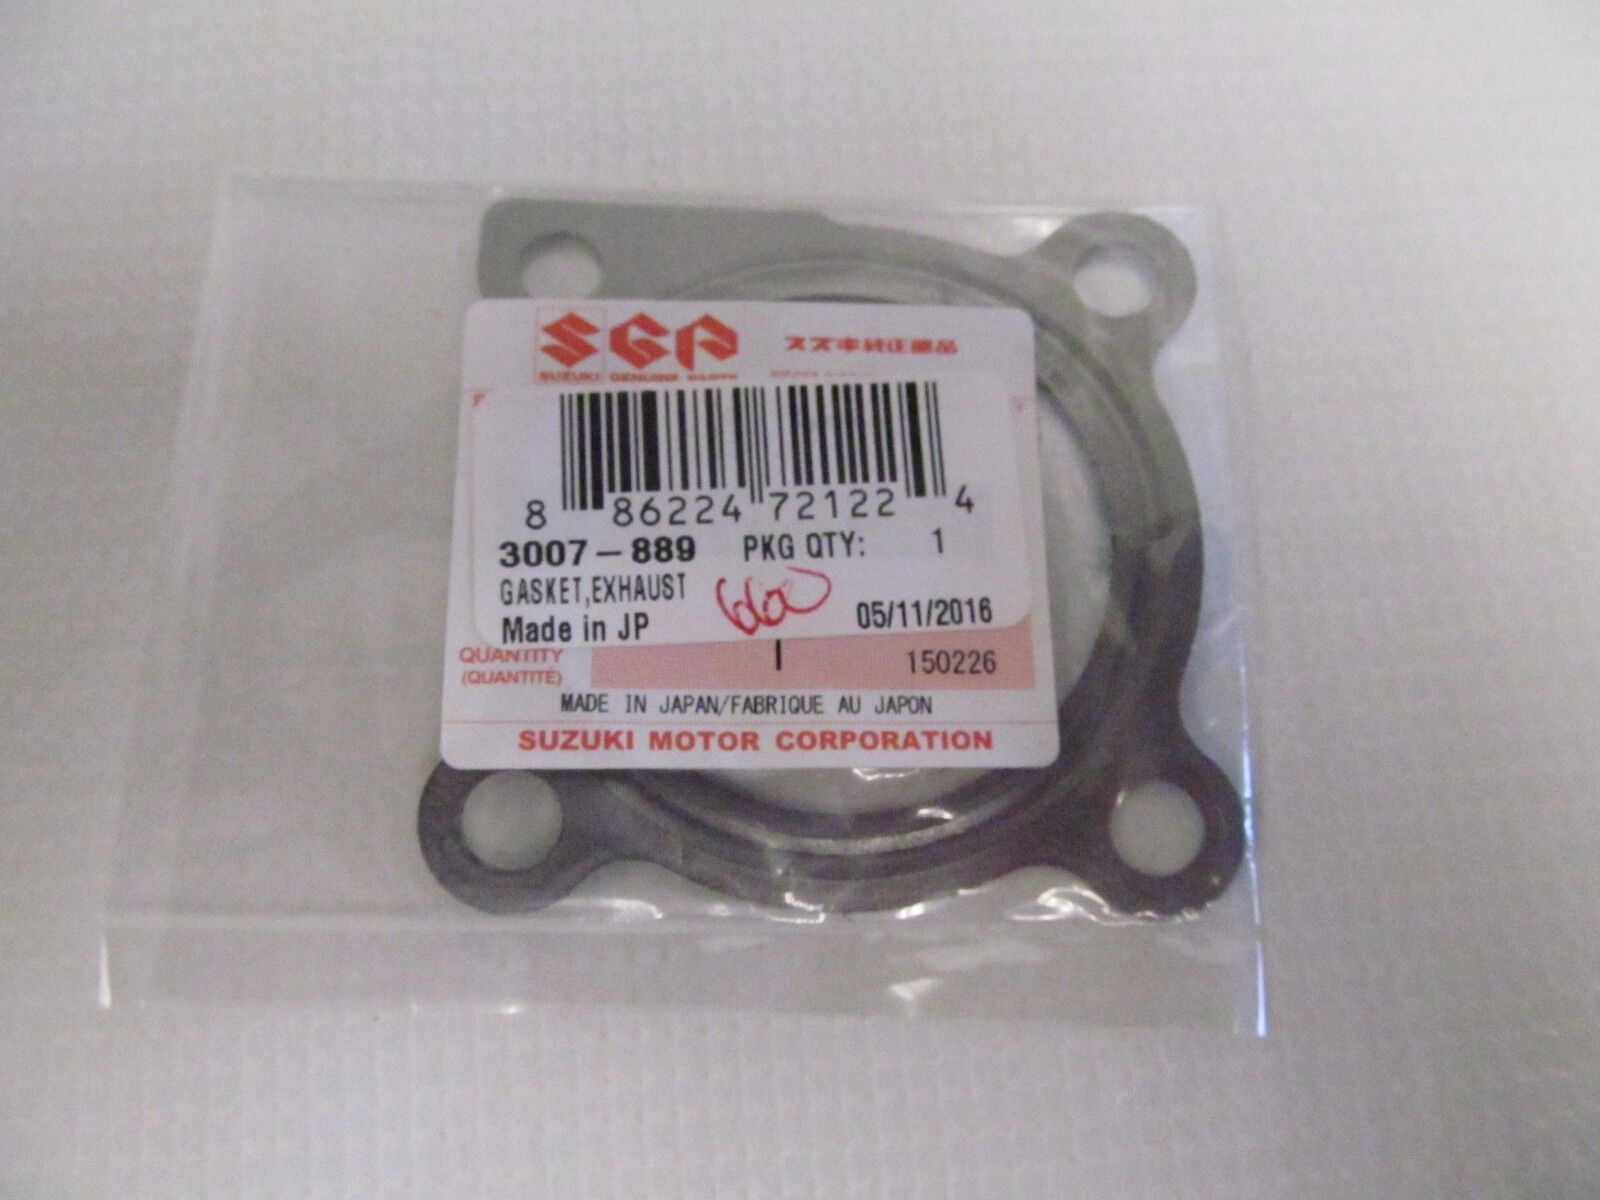 OEM Arctic Cat Snowmobile Exhaust Gasket See Listing for Fitment 3007-889